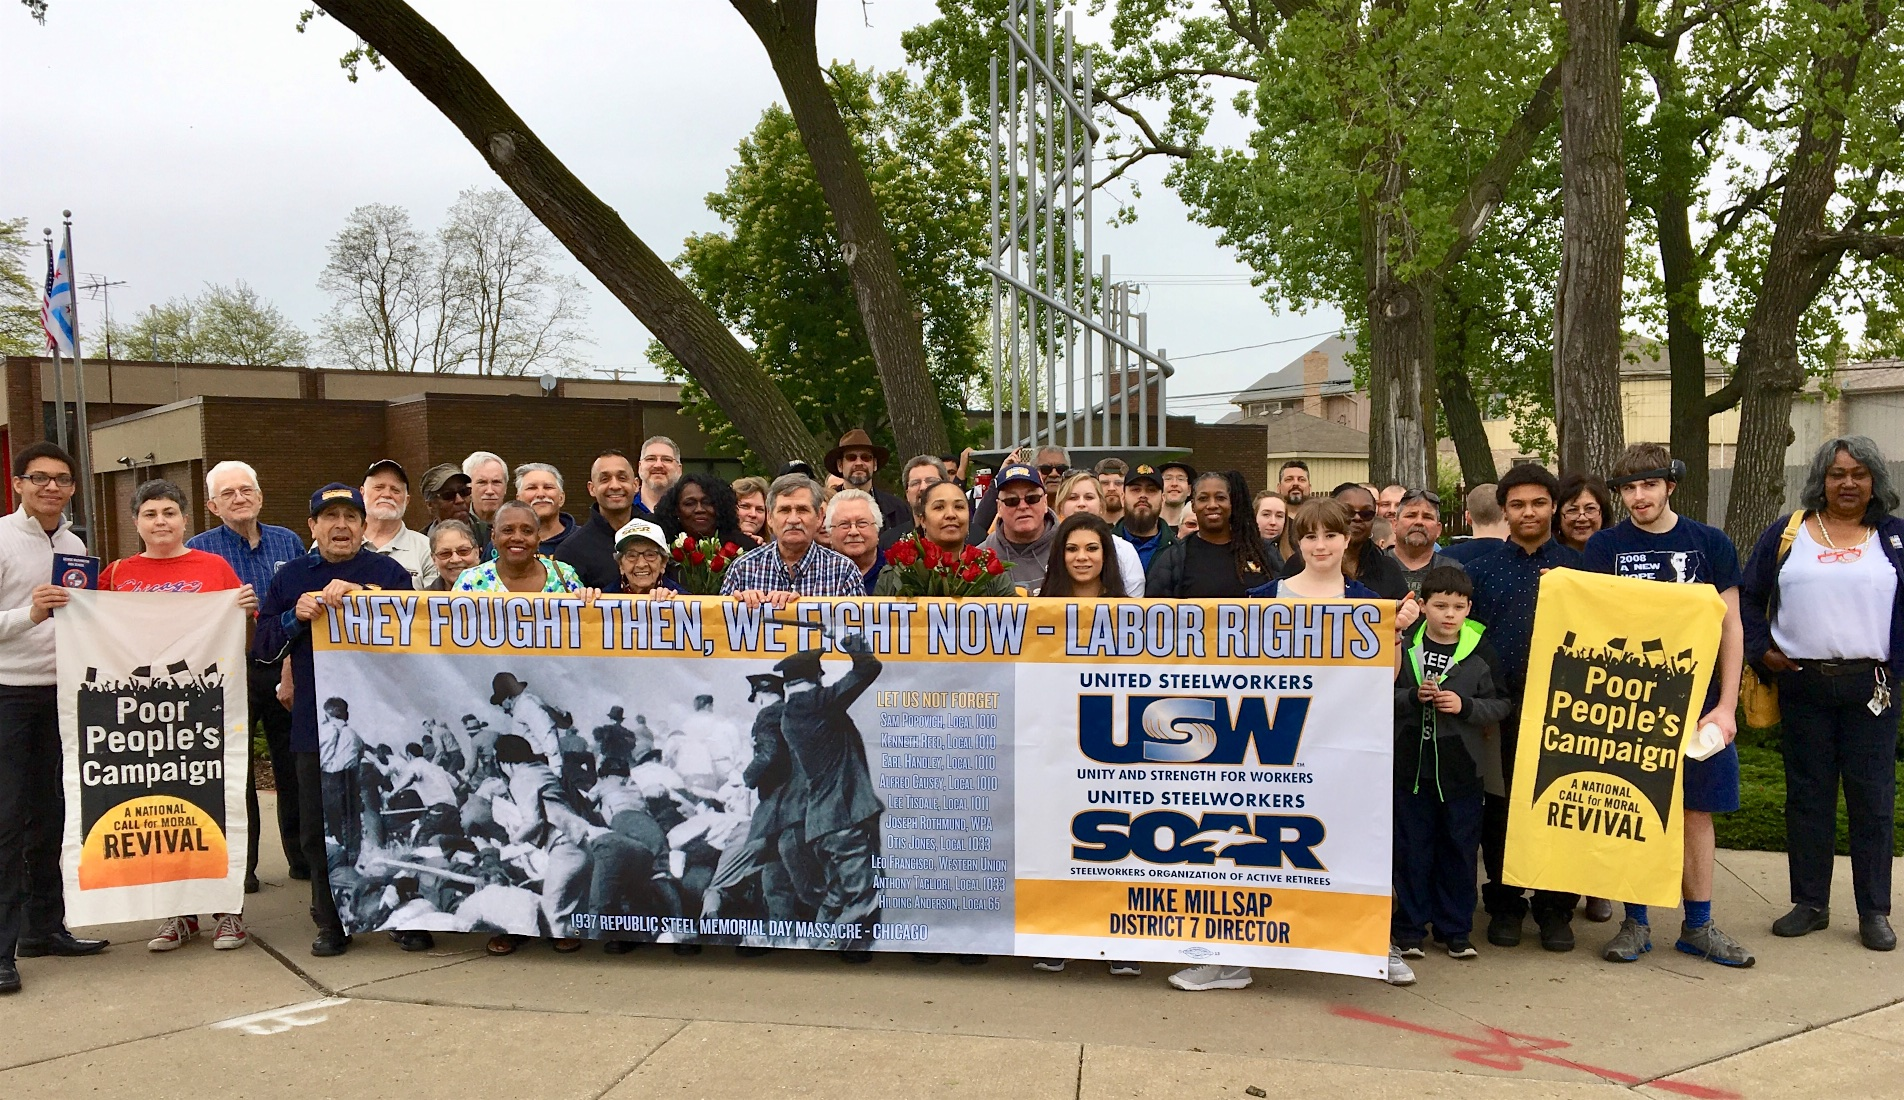 Rally Commemorates 1937 Memorial Day Massacre: District 7 SOAR Holds Annual Commemoration Of 1937